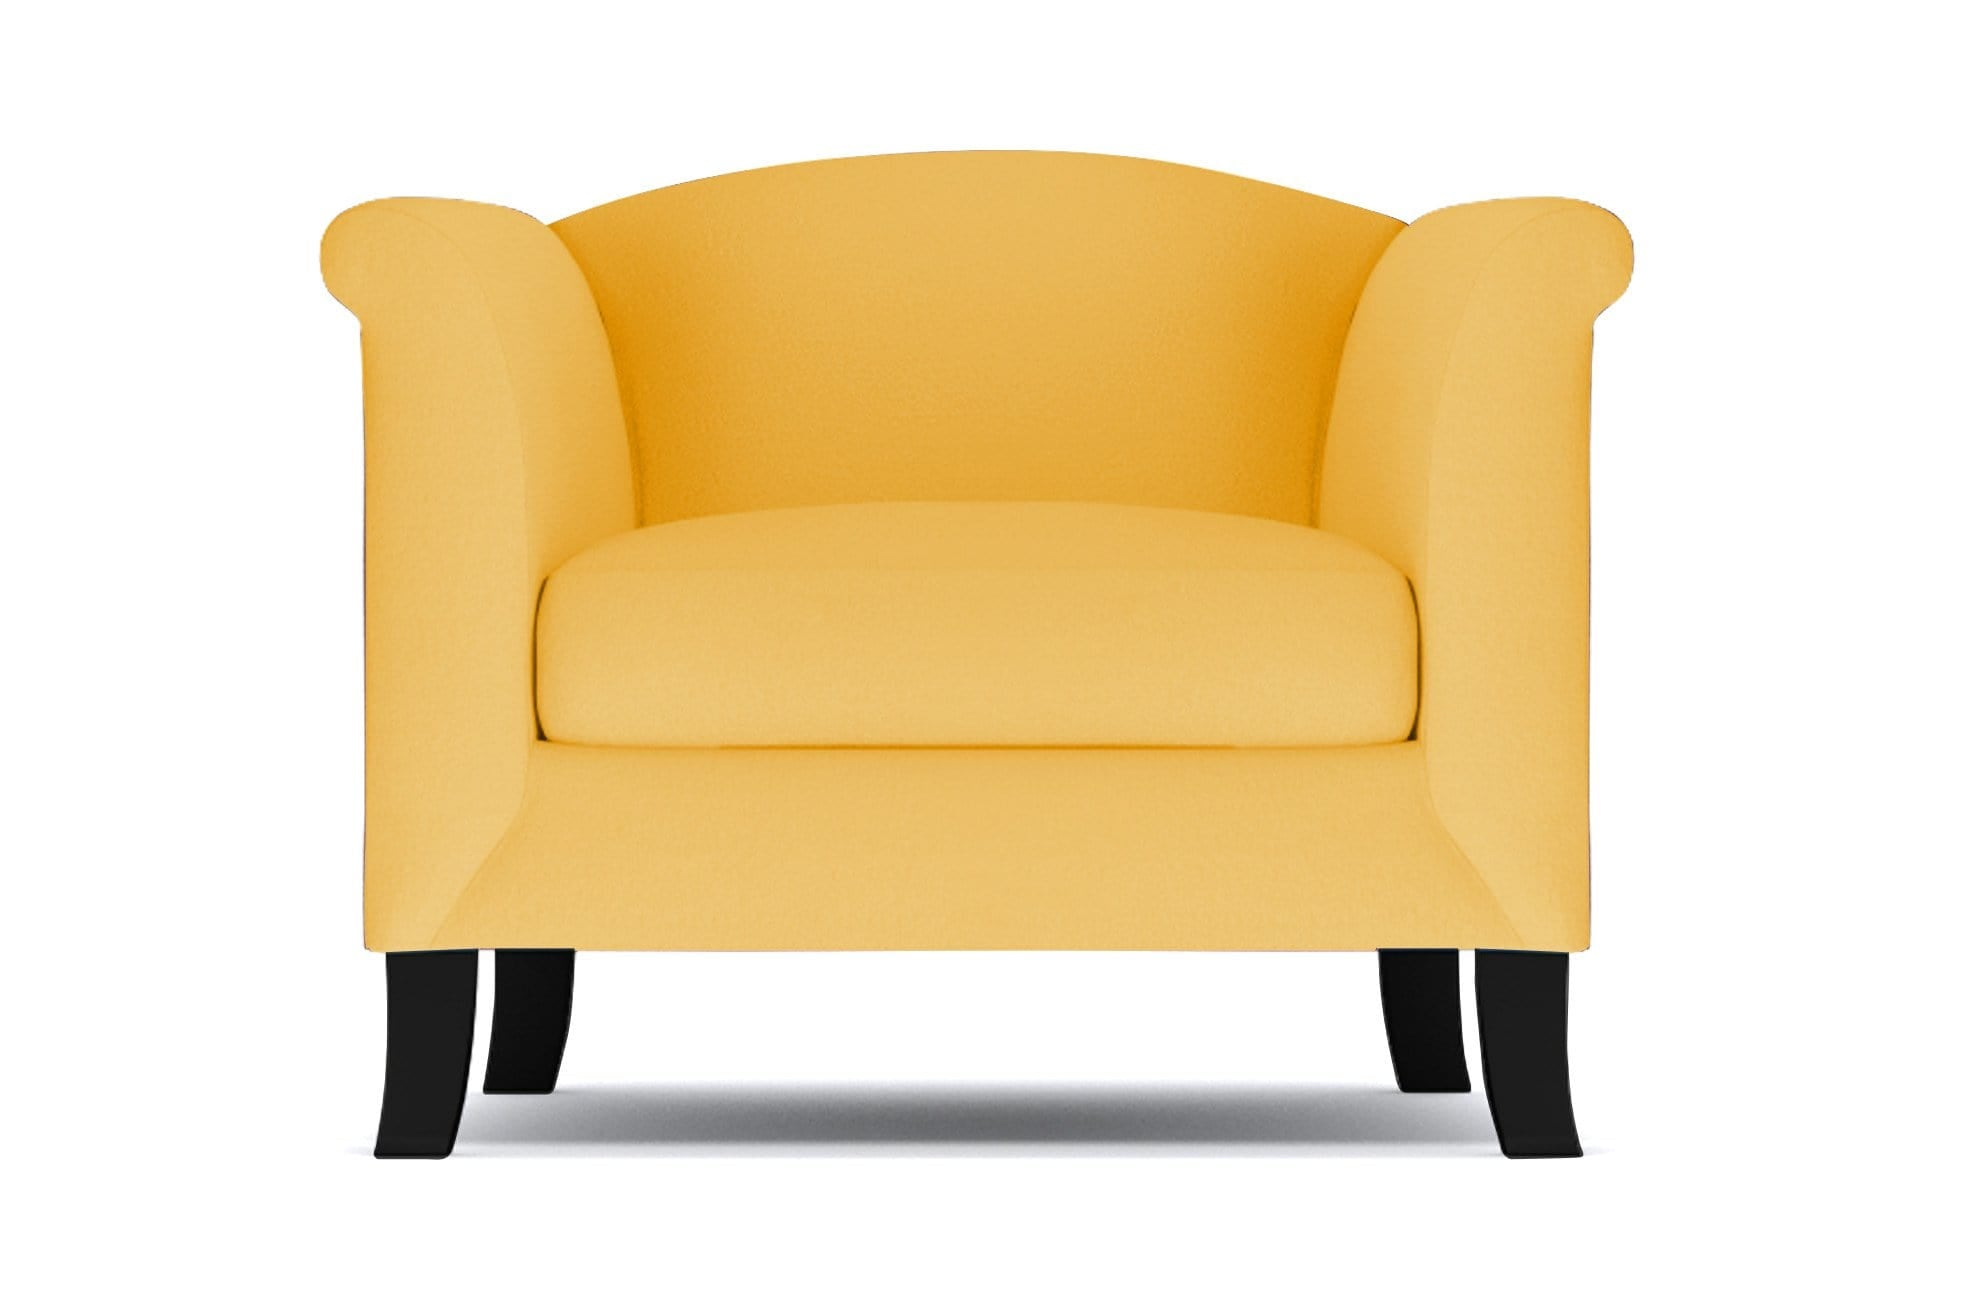 Albright_Chair__Yellow_Velvet___Accent_Chair__Furniture_sold_by_Apt2B